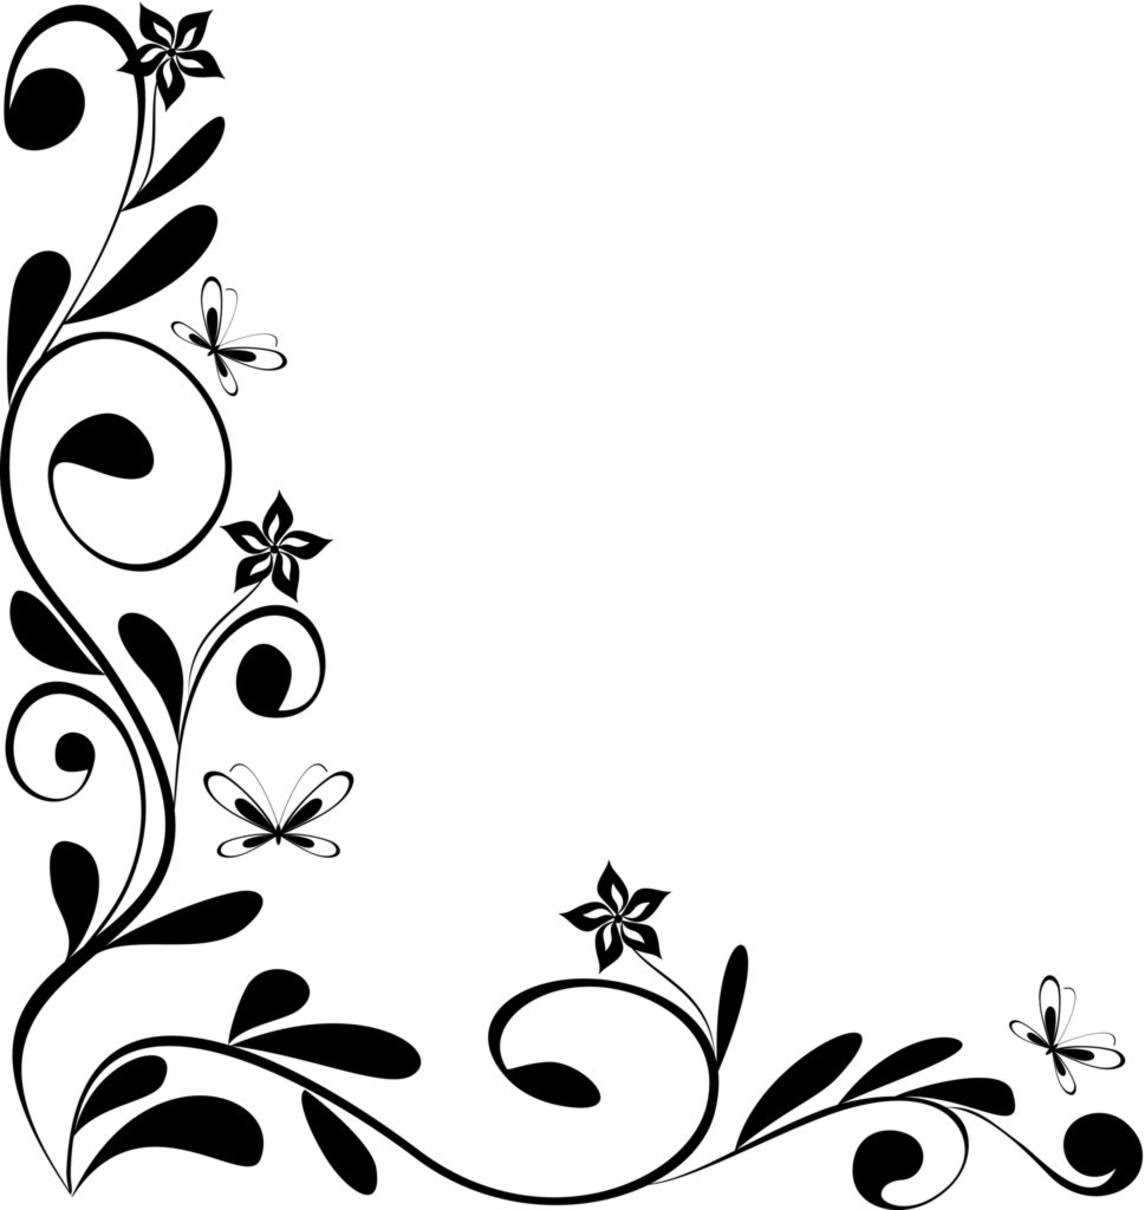 Free Simple Corner Border Designs For Projects Download Free Clip Art Free Clip Art On Clipart Library